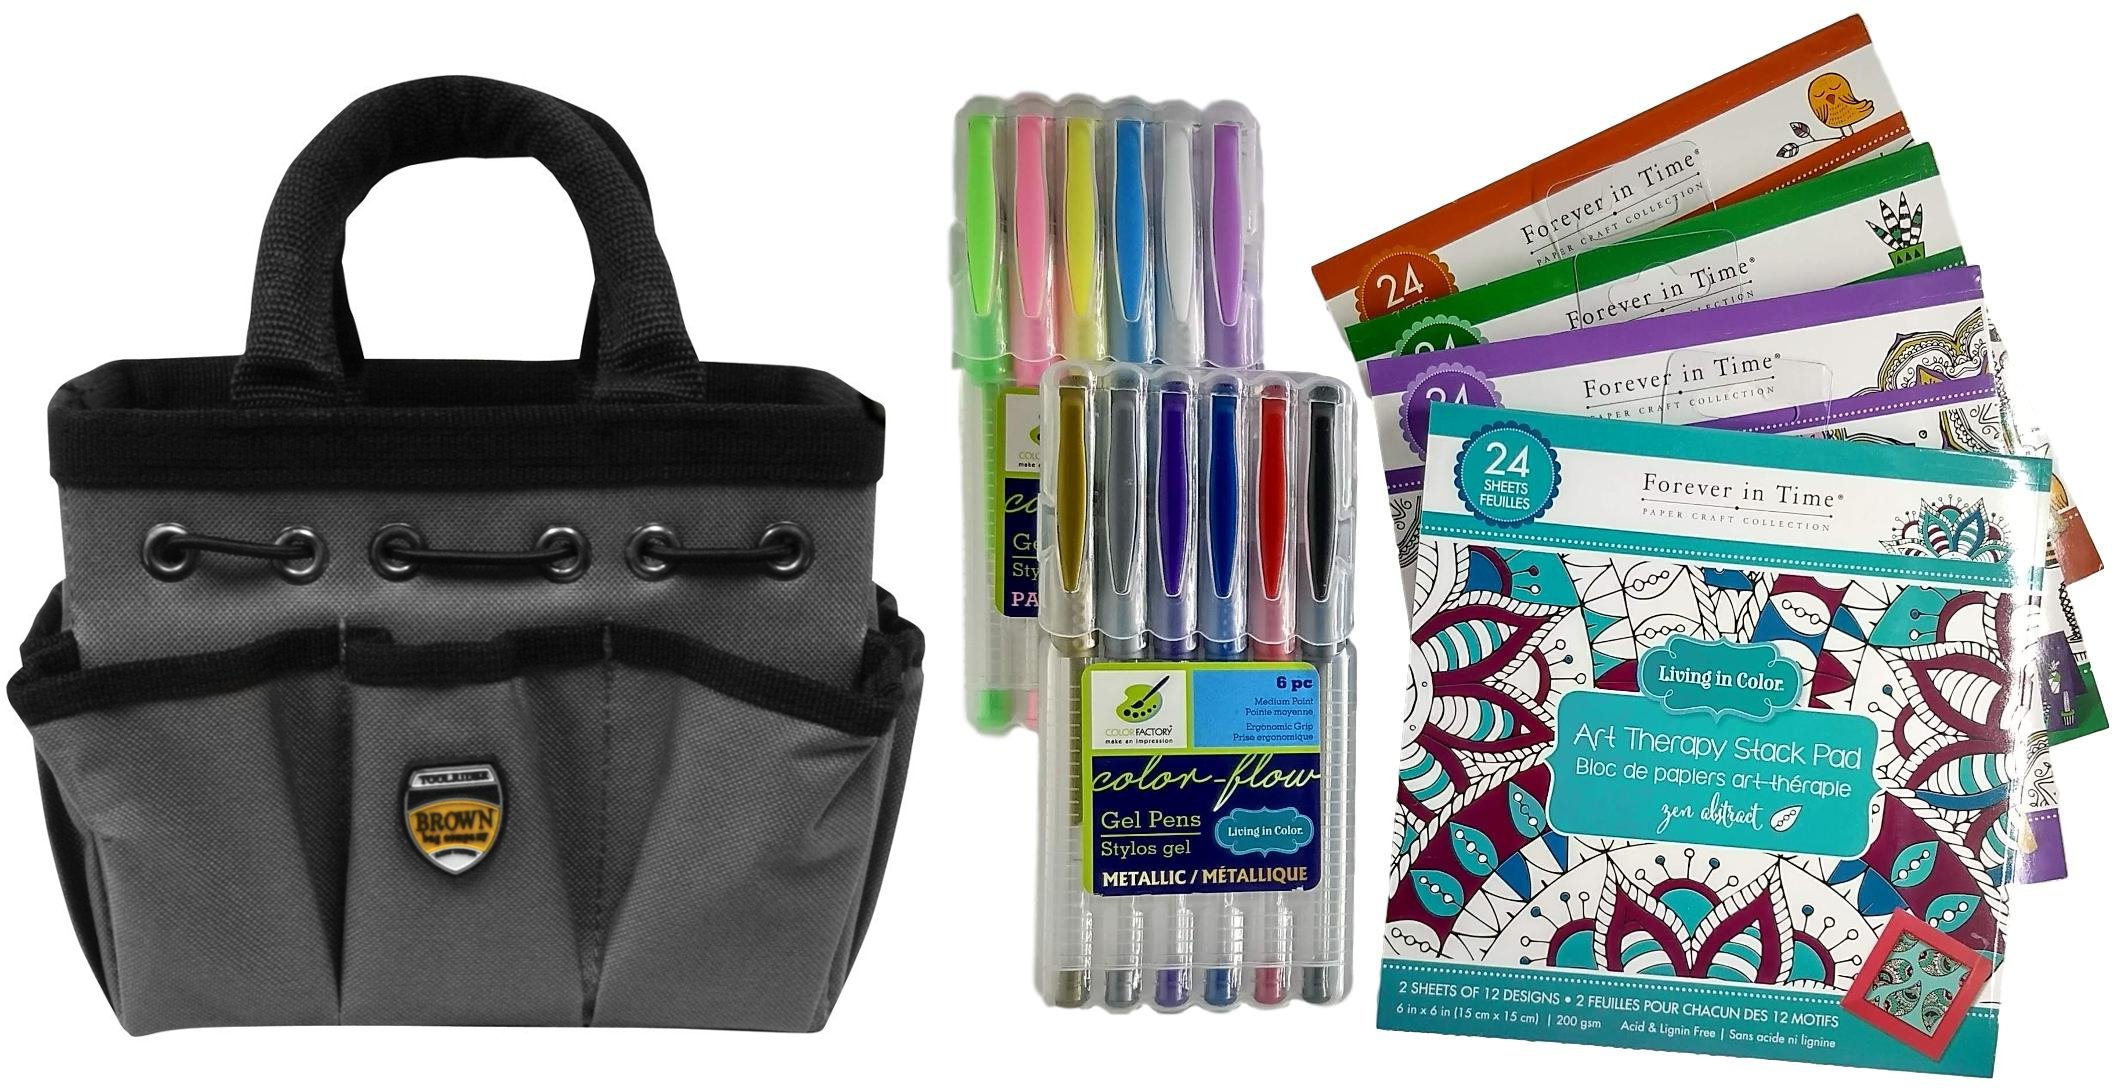 Coloring Books Gift Set for Teens and Adults Art Therapy Kit: 4 Books, 12 Gel Pens and Artist Tool Bag 7 Piece Set